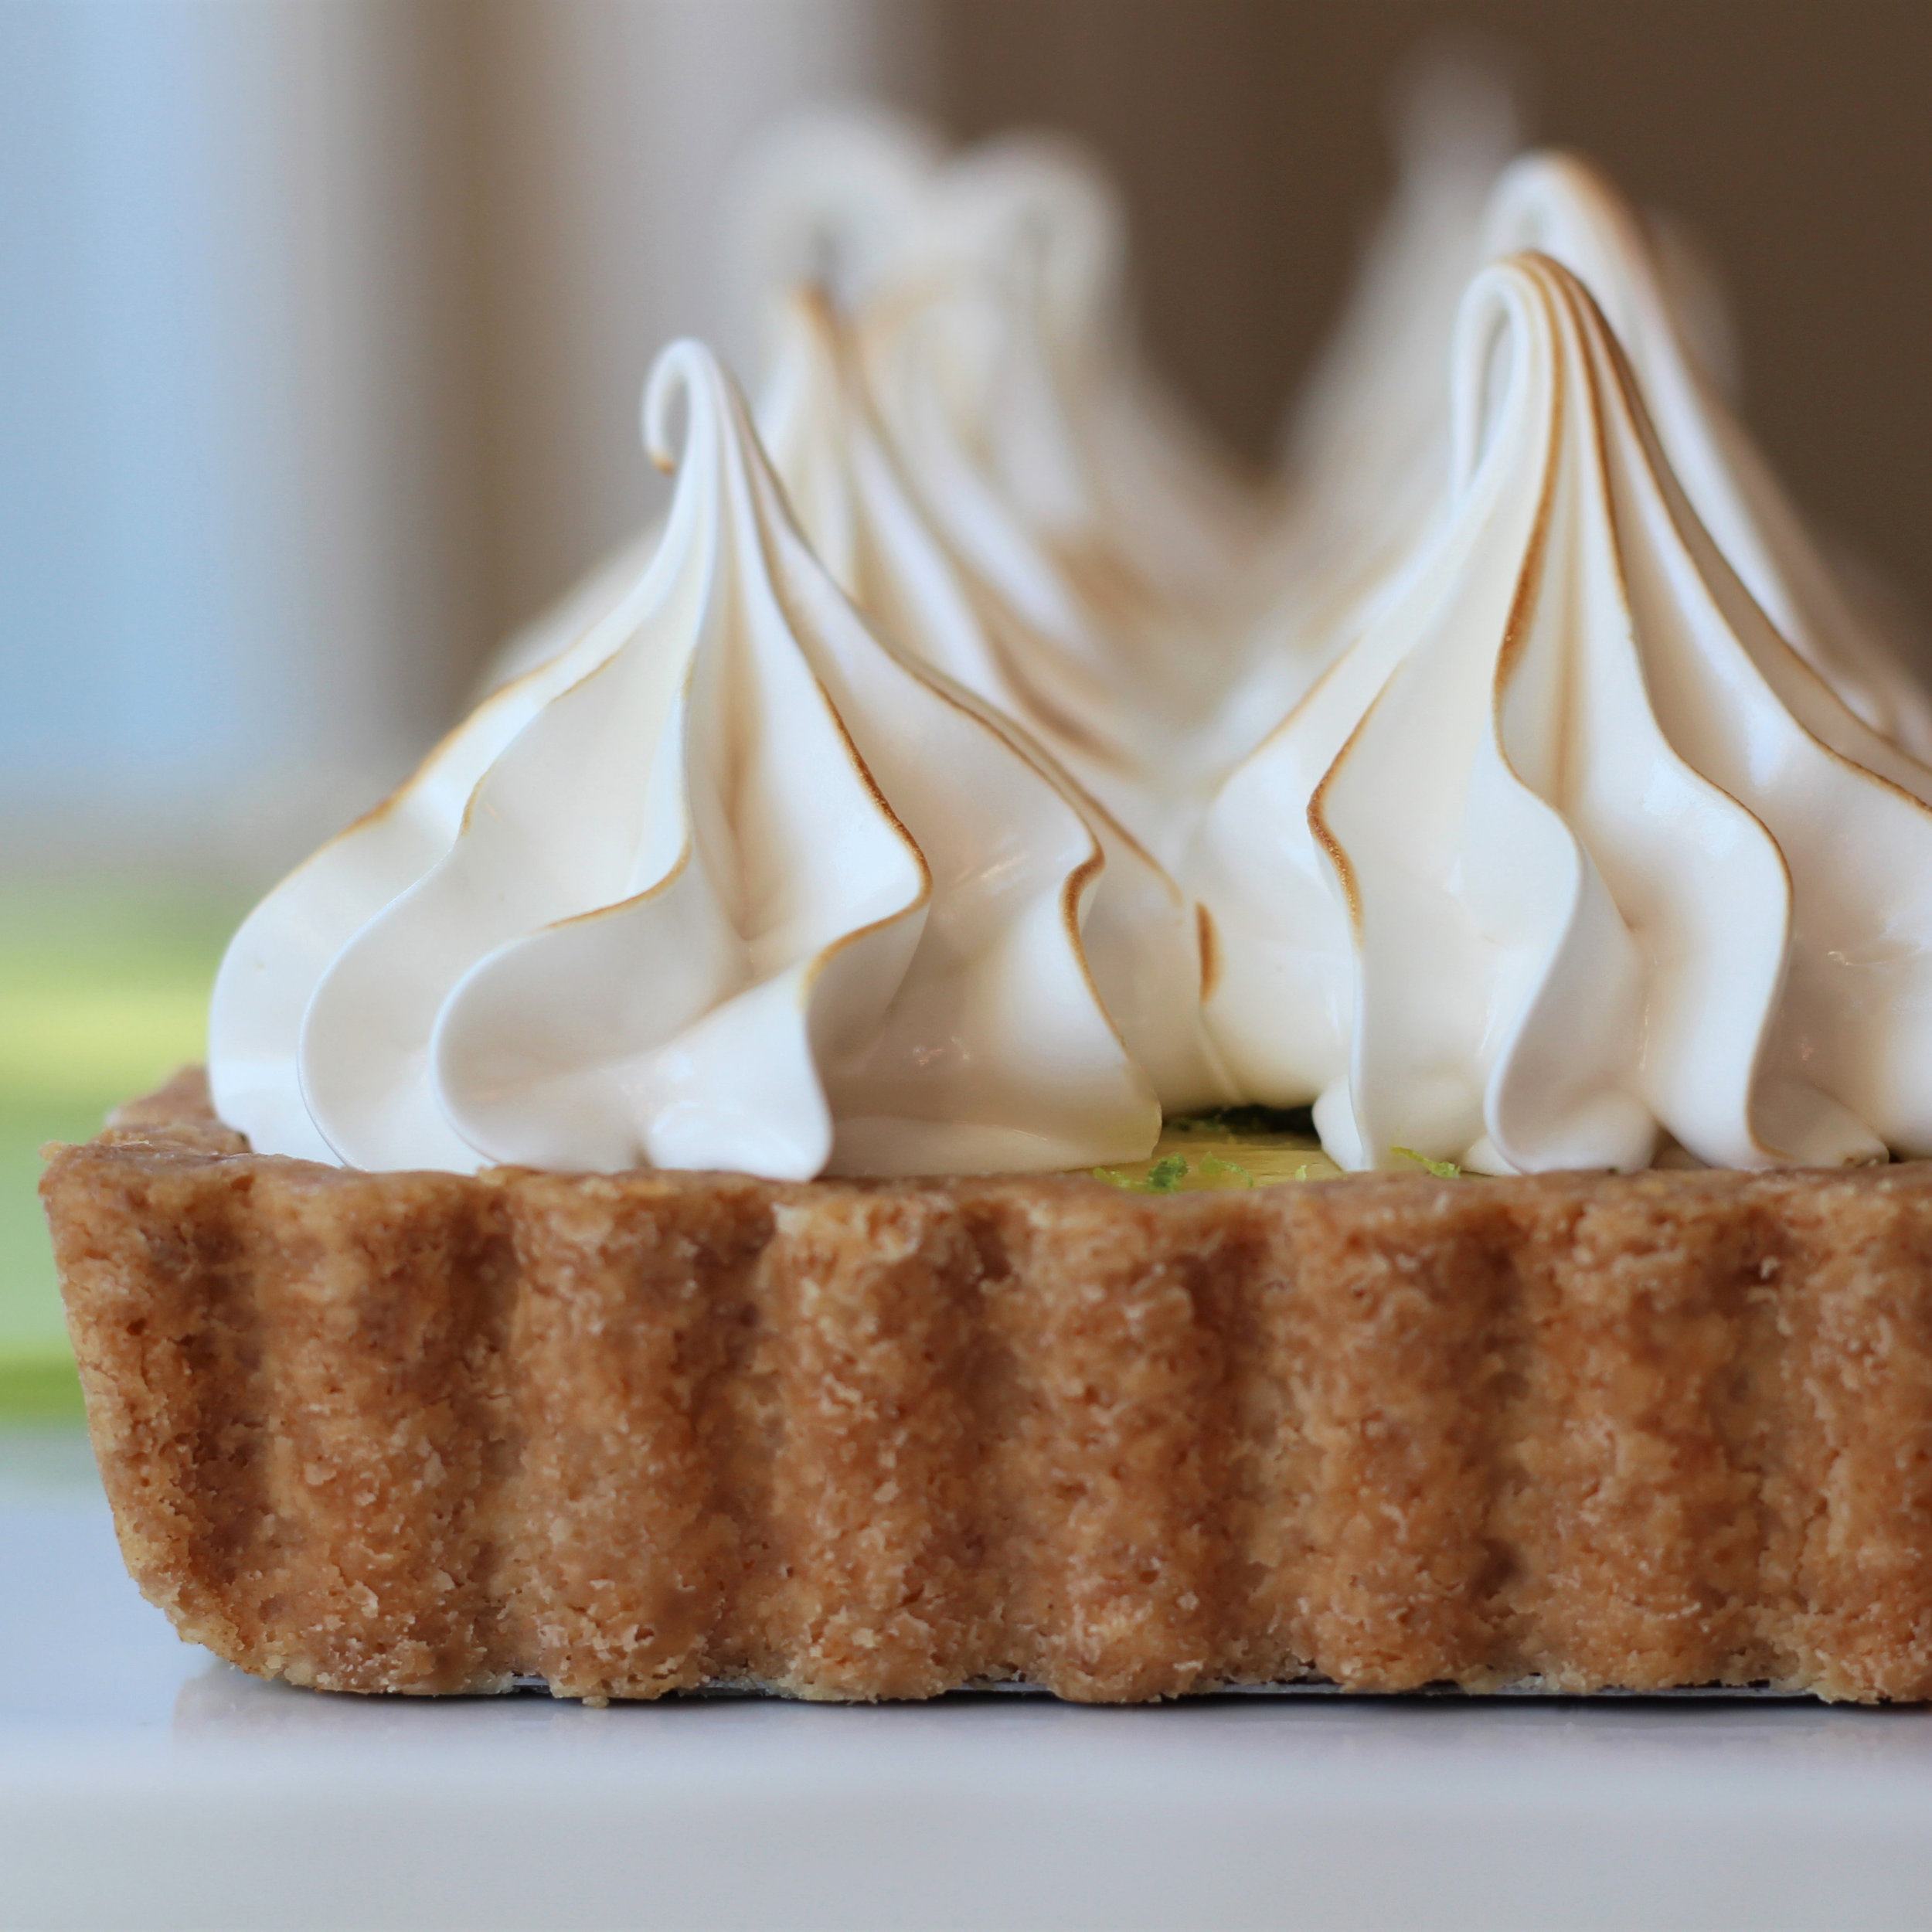 I put the lime in the coconut tart